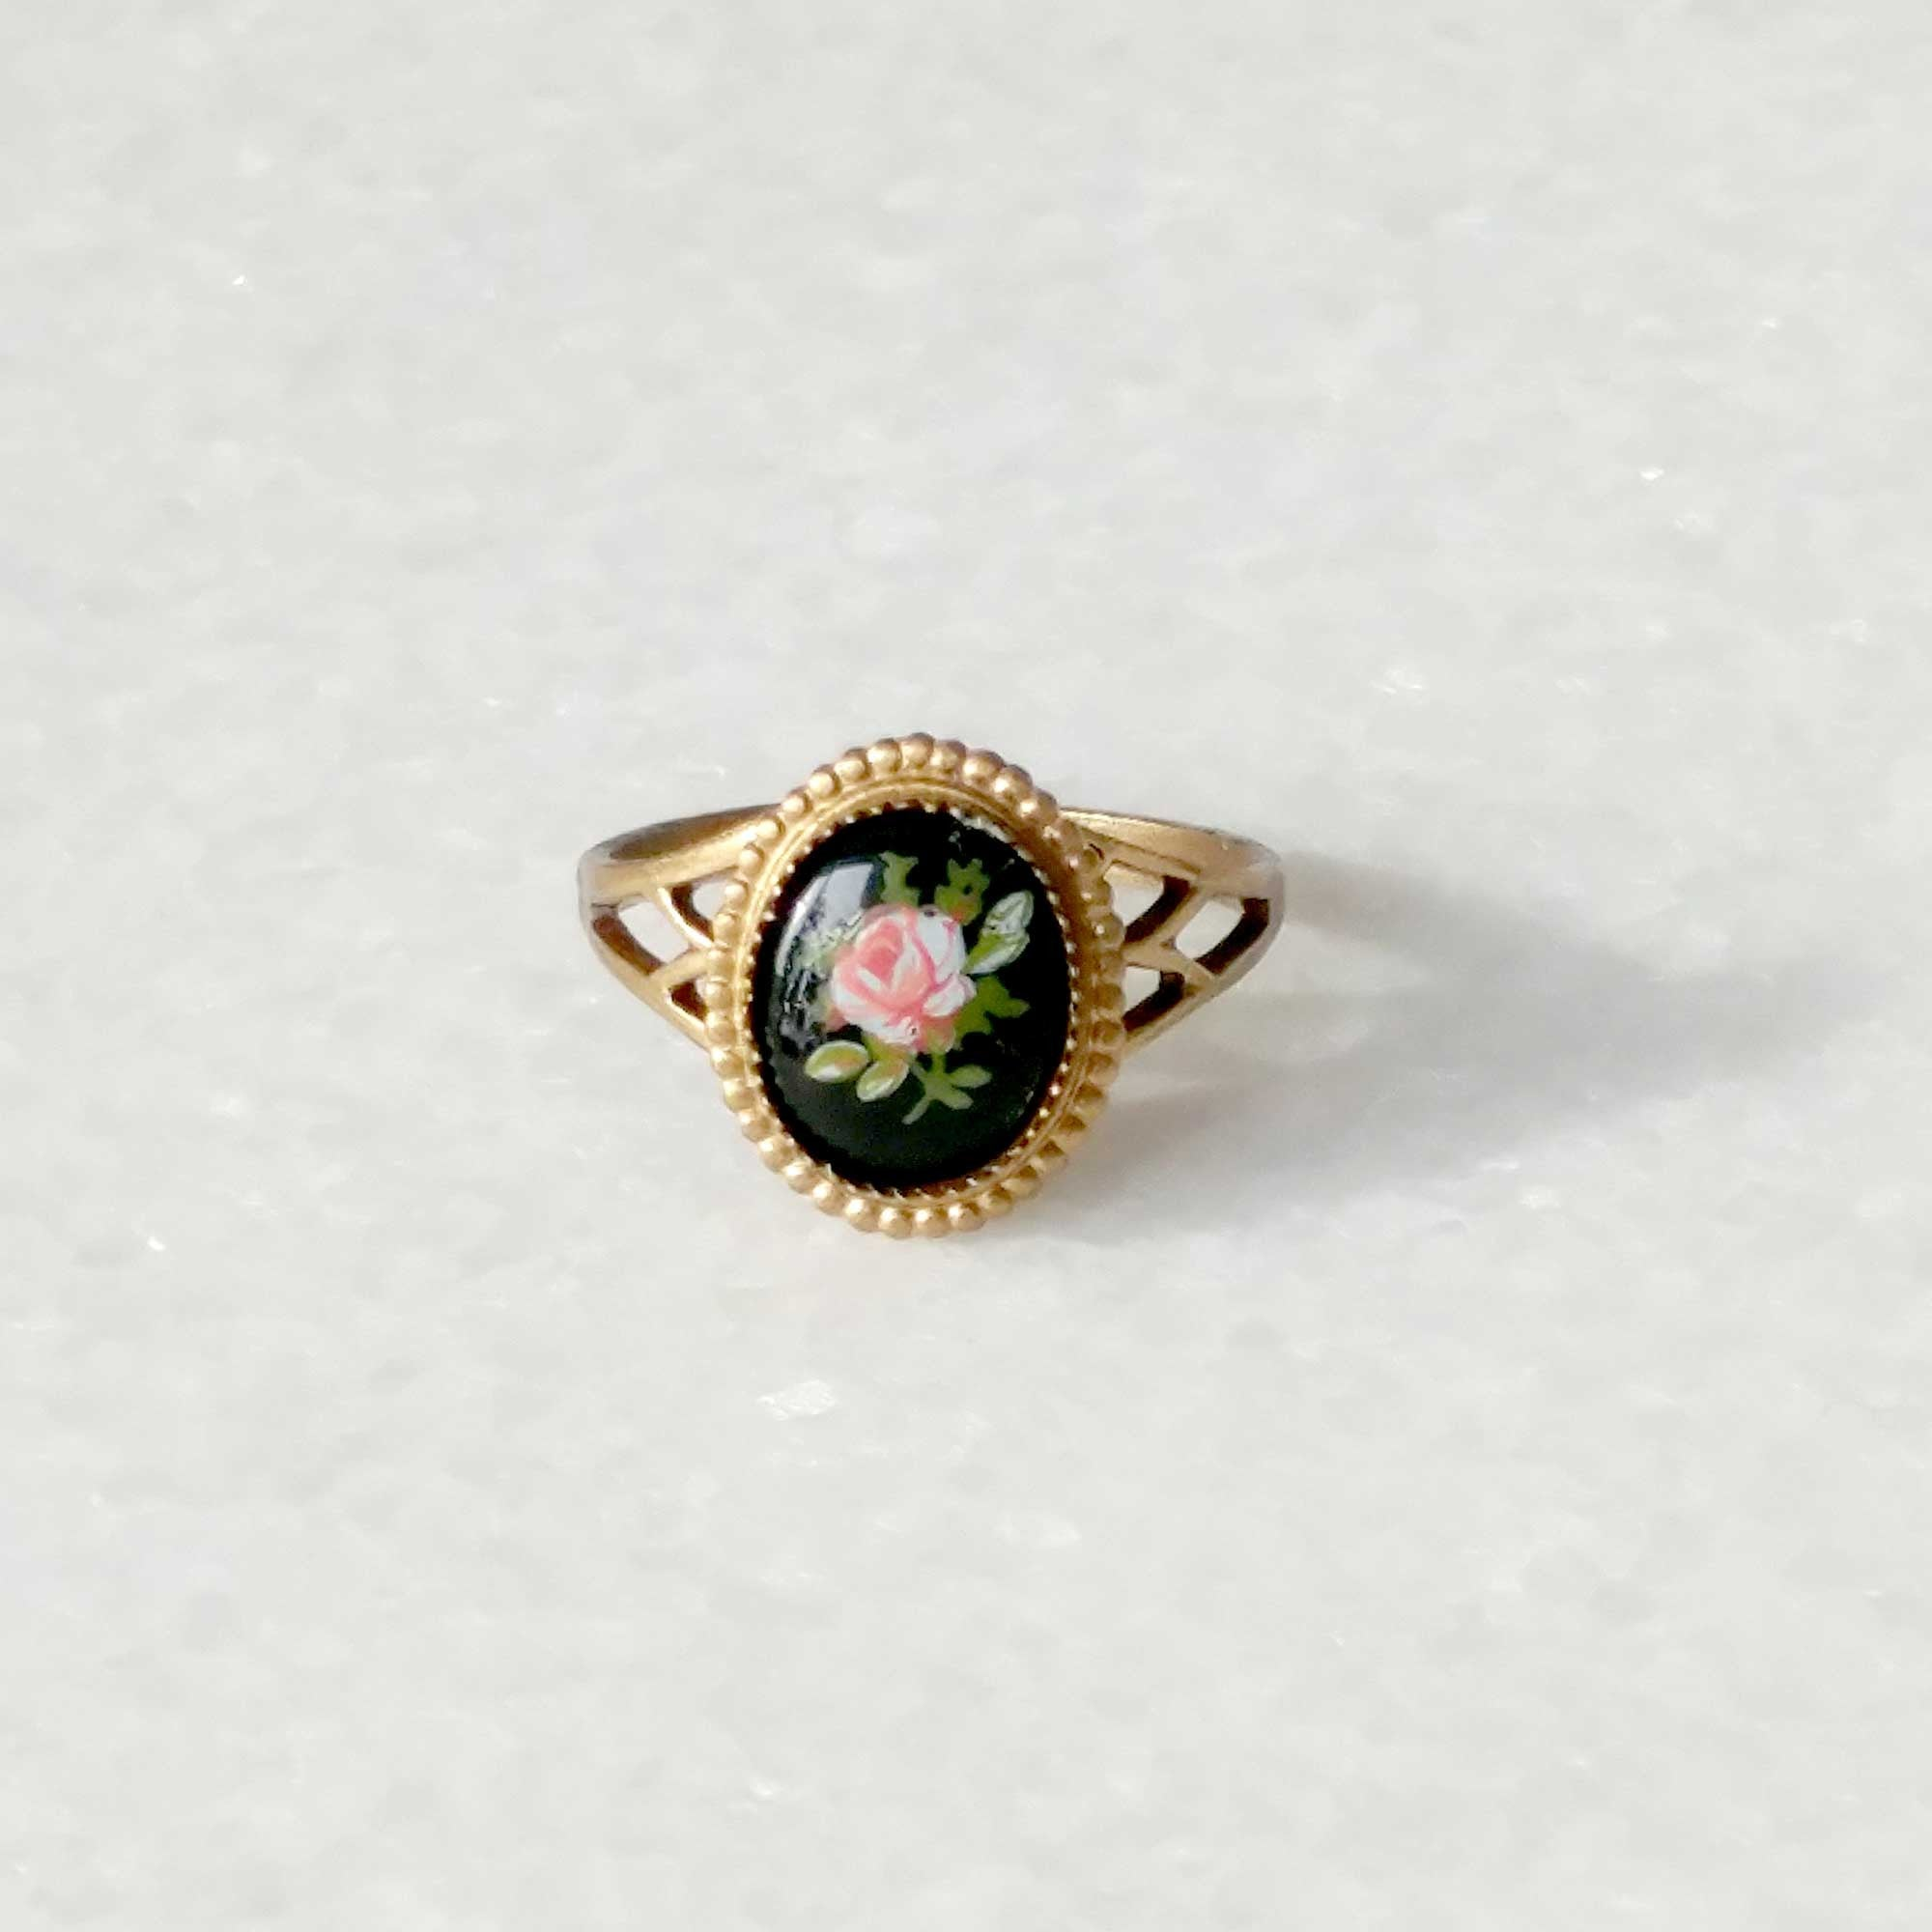 Rose ring adjustable cameo ring